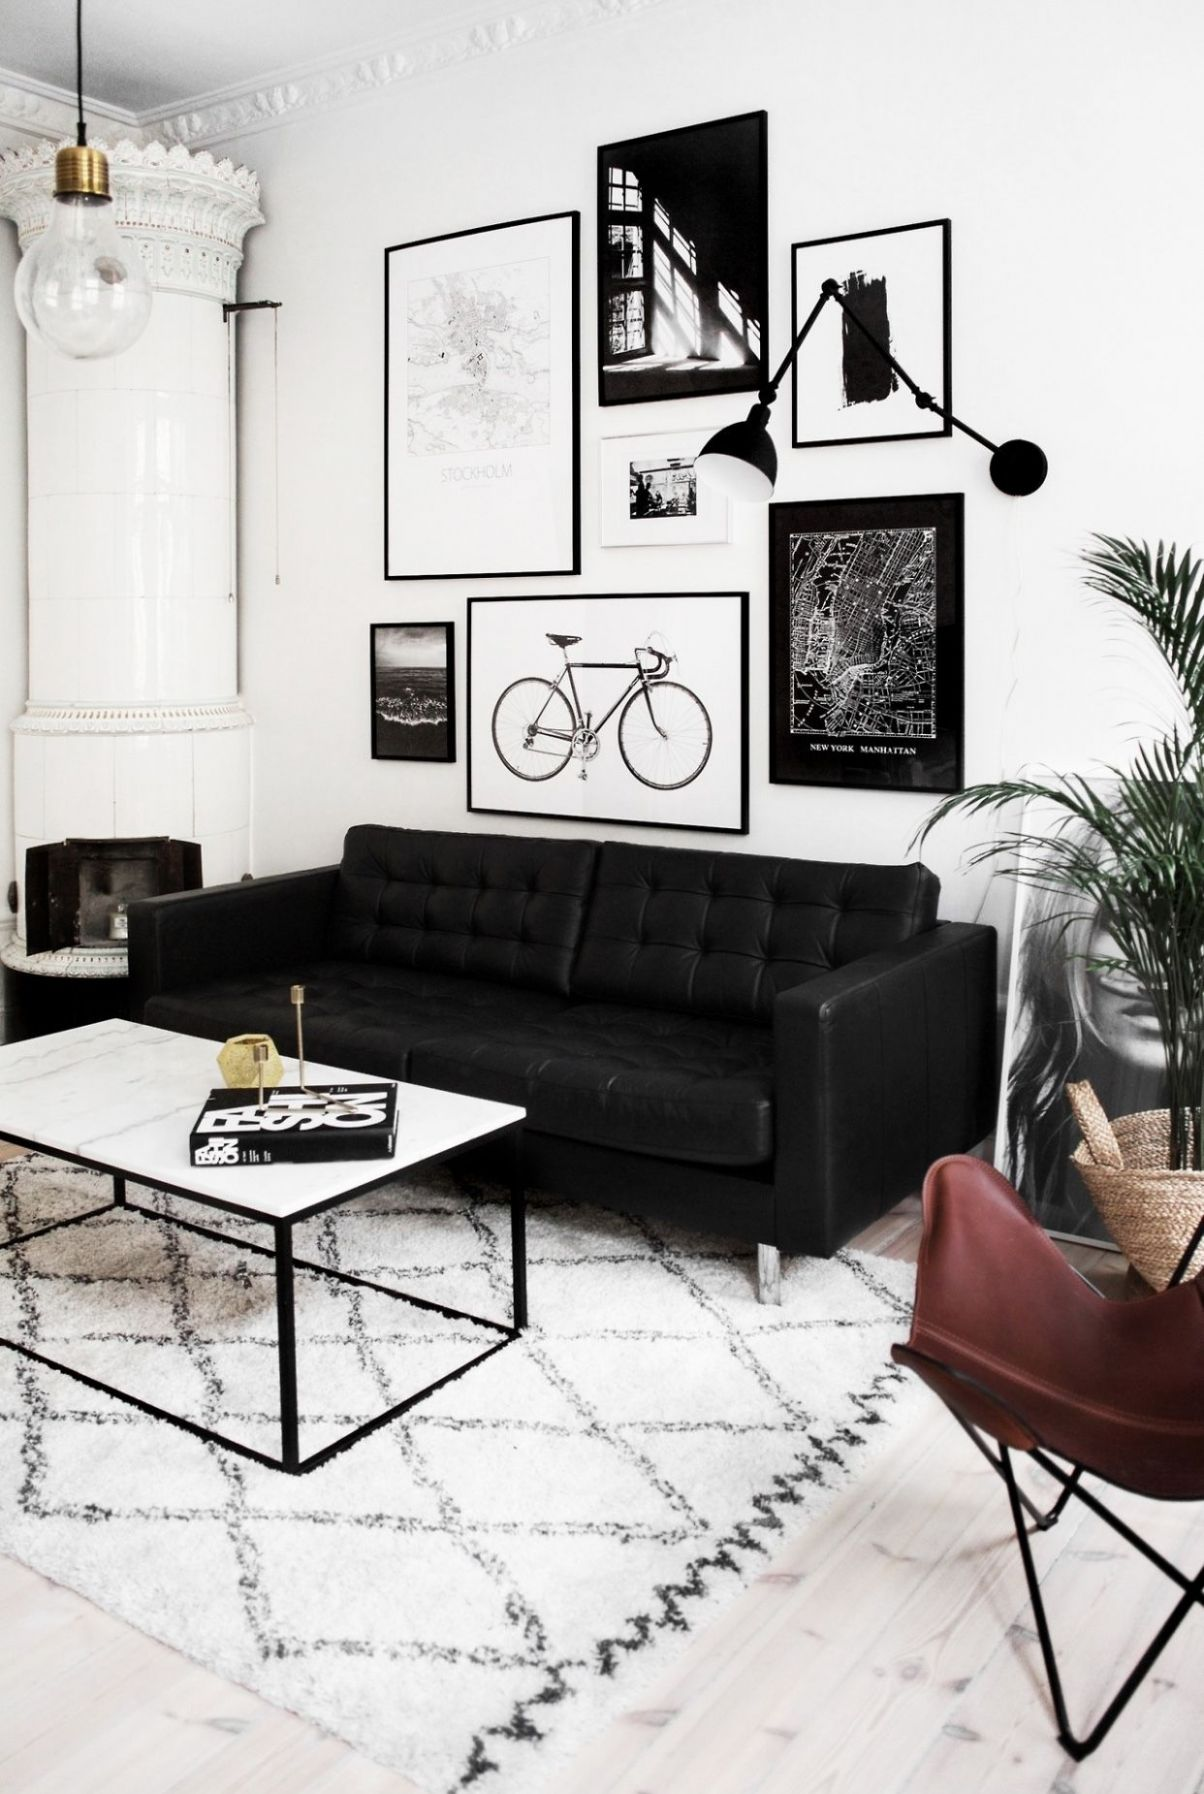 Pin by Jean Ow on _Flat shortlist | Black, white living room ..